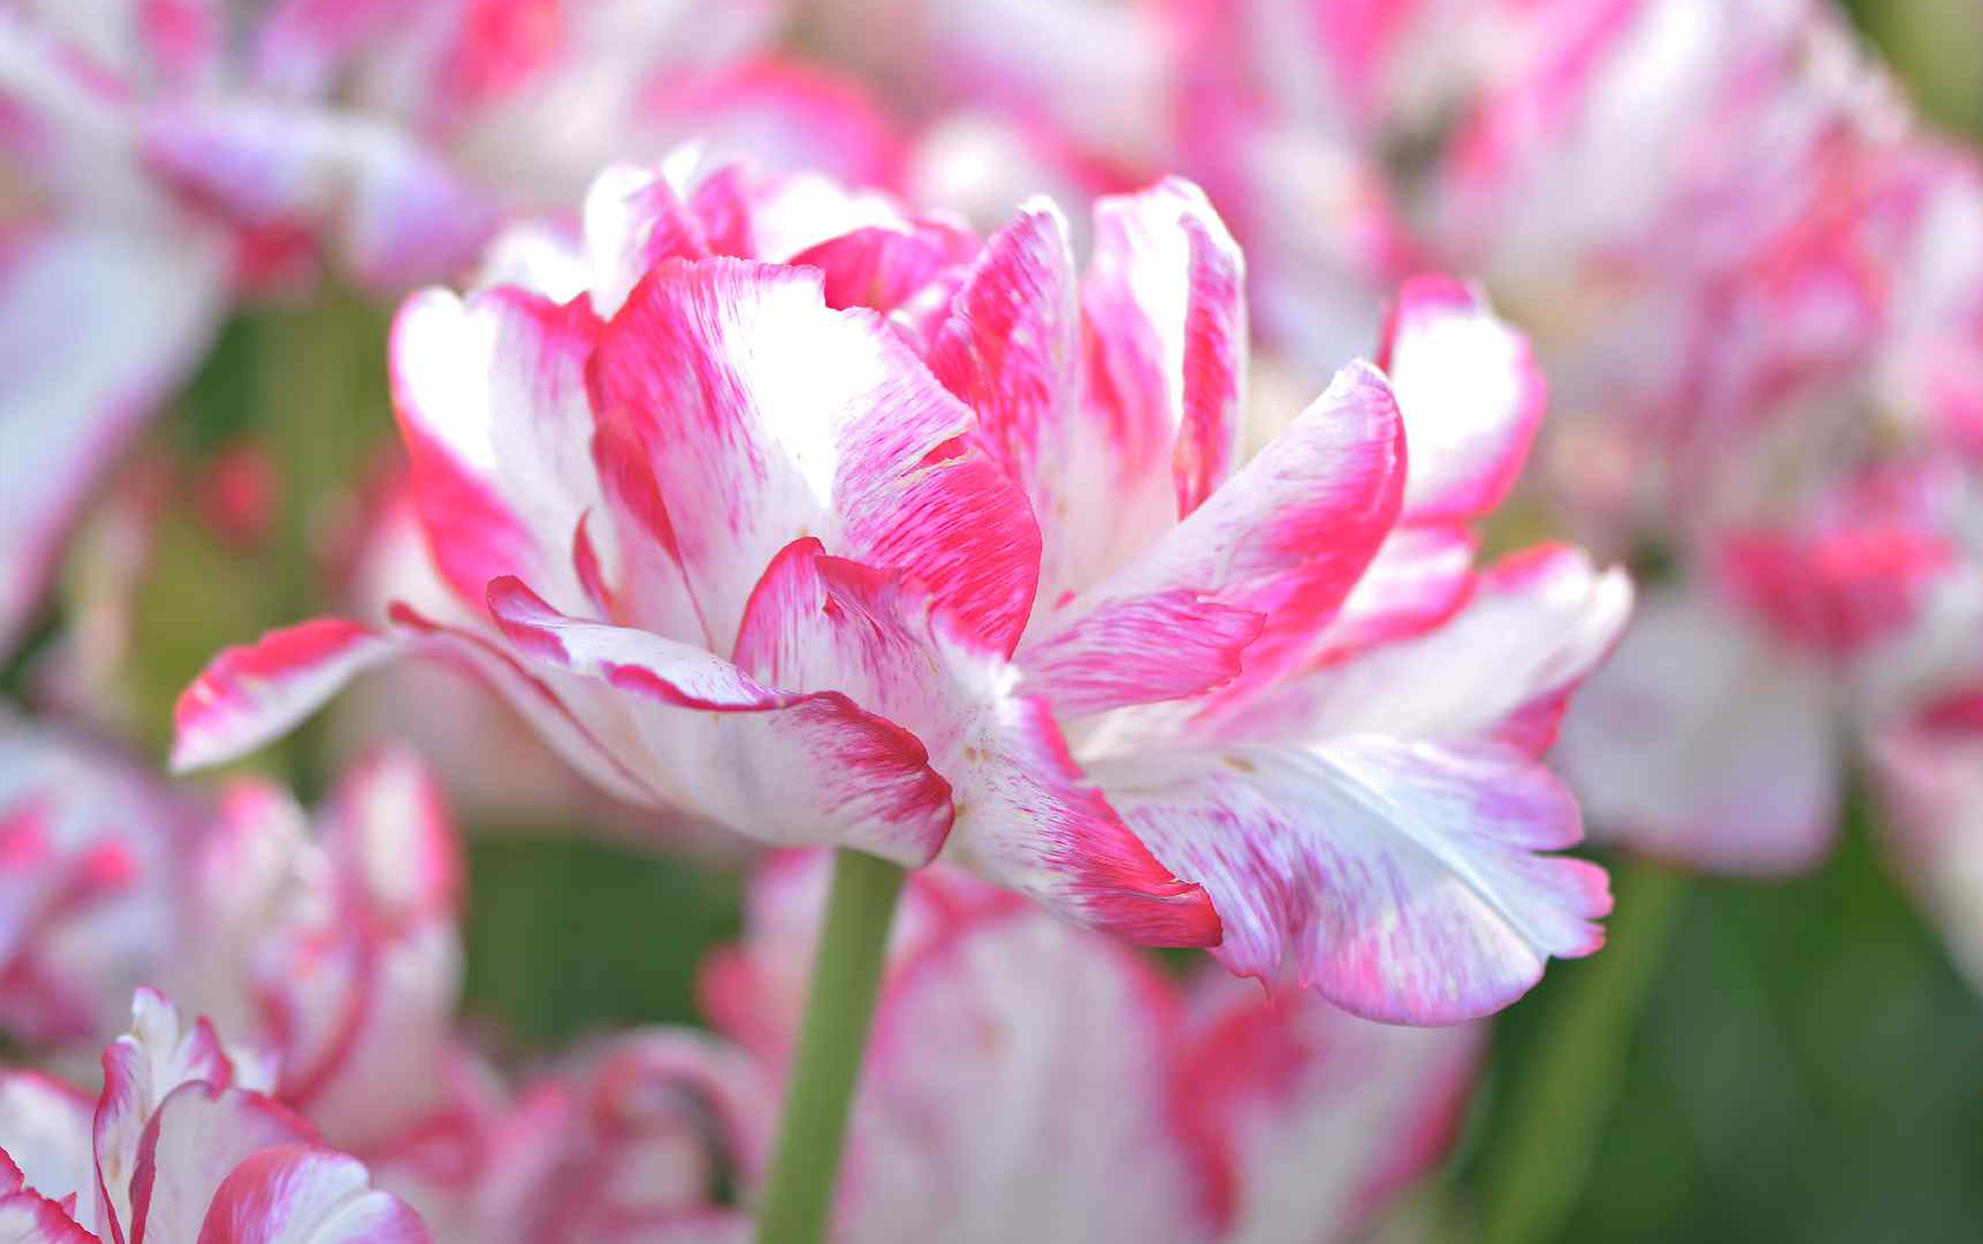 Peony tulips growing outside pink and white